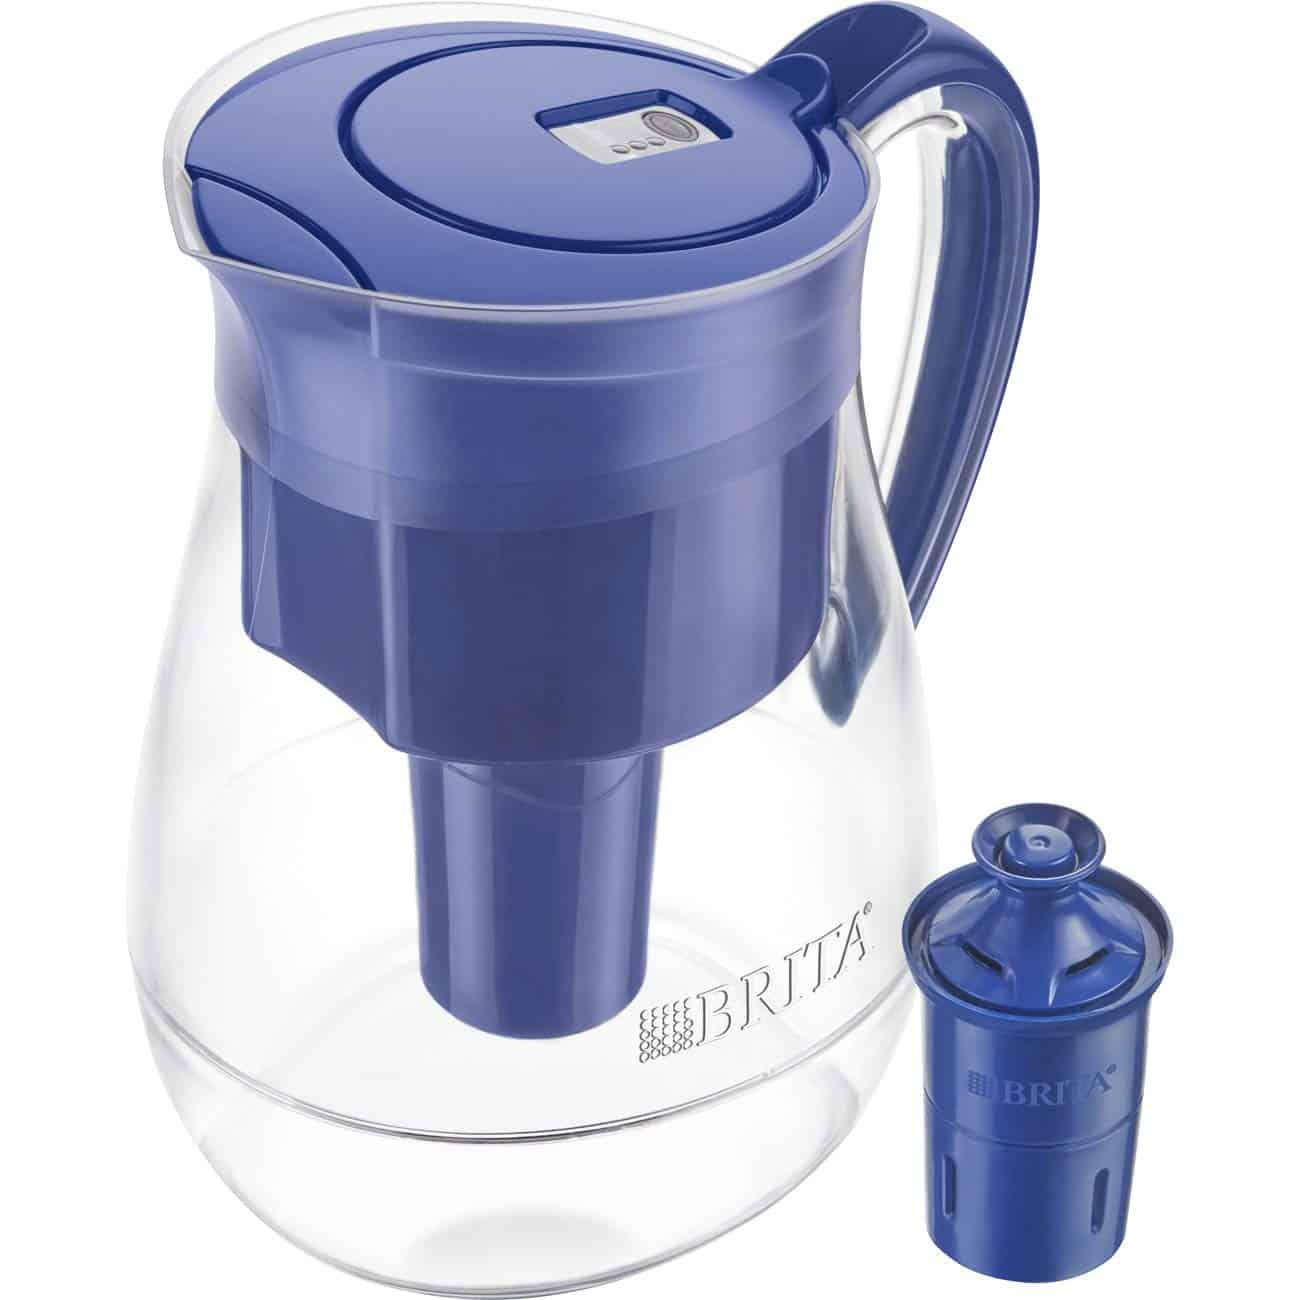 5 Brita Water Filters To Help You Drink More Water 5